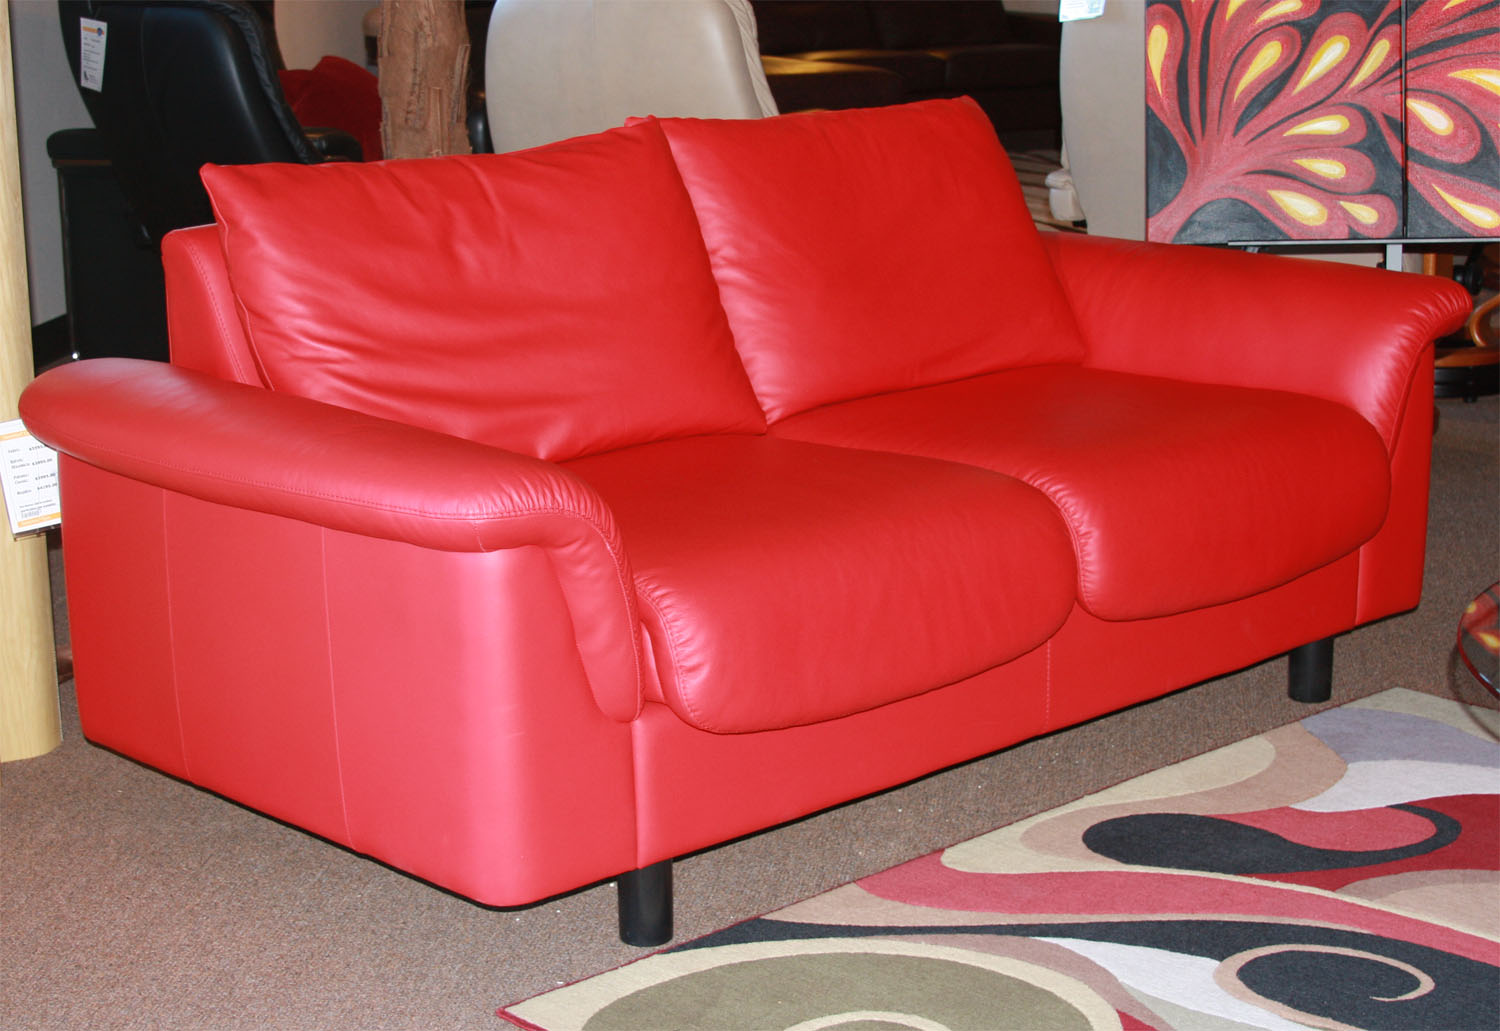 Stressless Paloma Chilli Red Leather Color Sofa from Ekornes